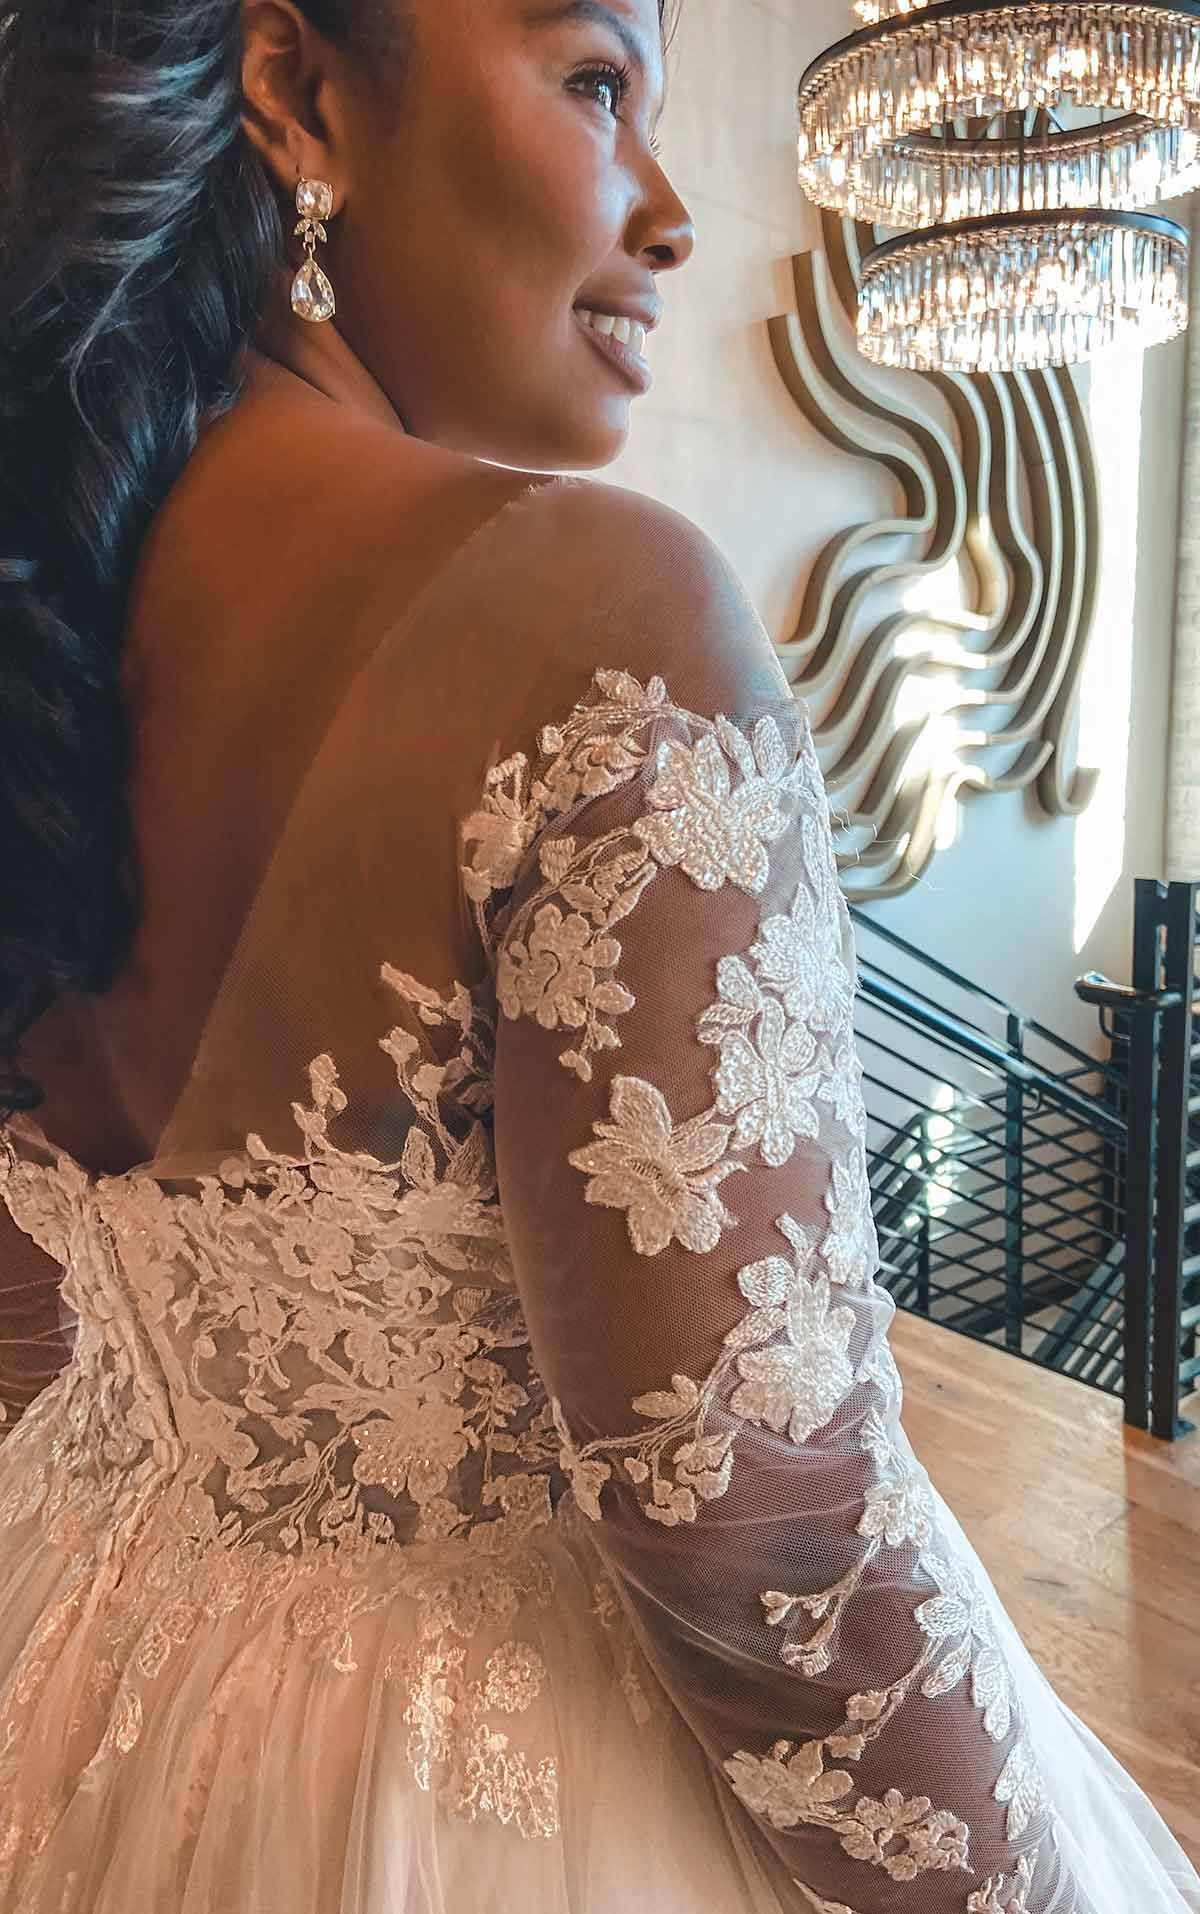 Off Shoulder Lace Plus Size Ballgown With Tiered Skirt Essense Of Australia Wedding Dresses In 2021 Essense Of Australia Wedding Dresses Ball Gowns Wedding Dresses [ 1914 x 1200 Pixel ]